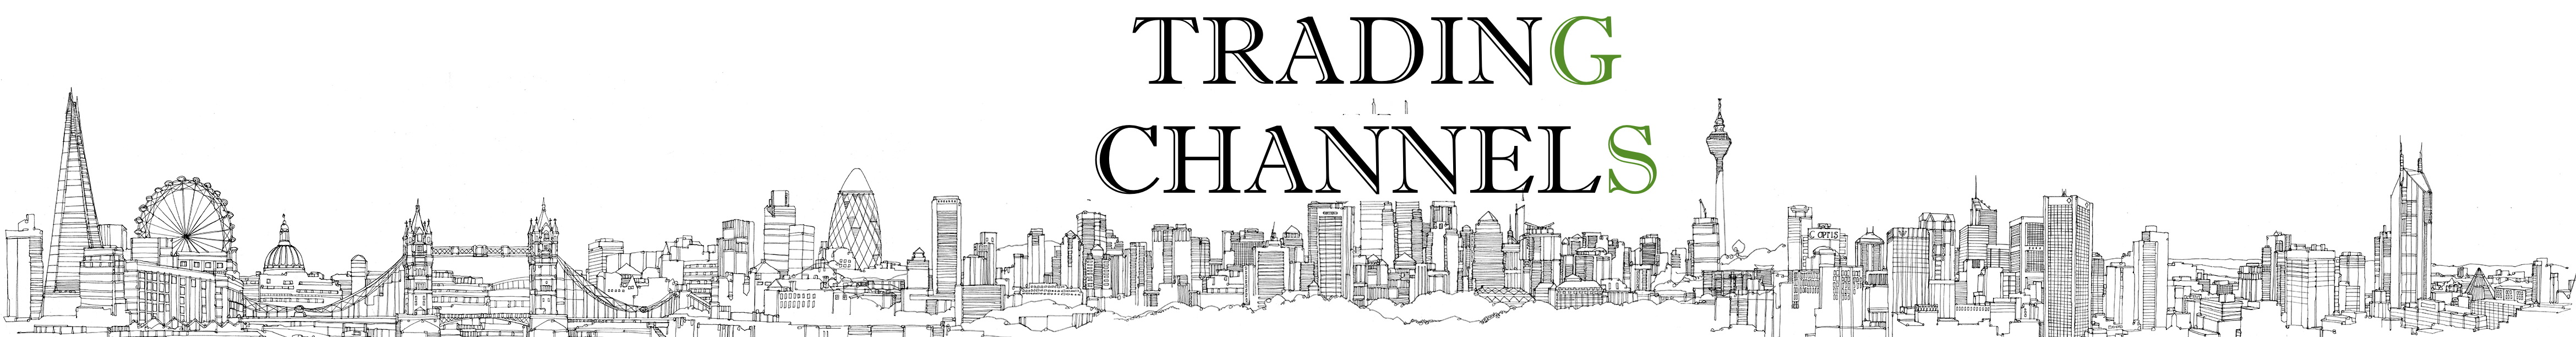 Trading Channels Logo